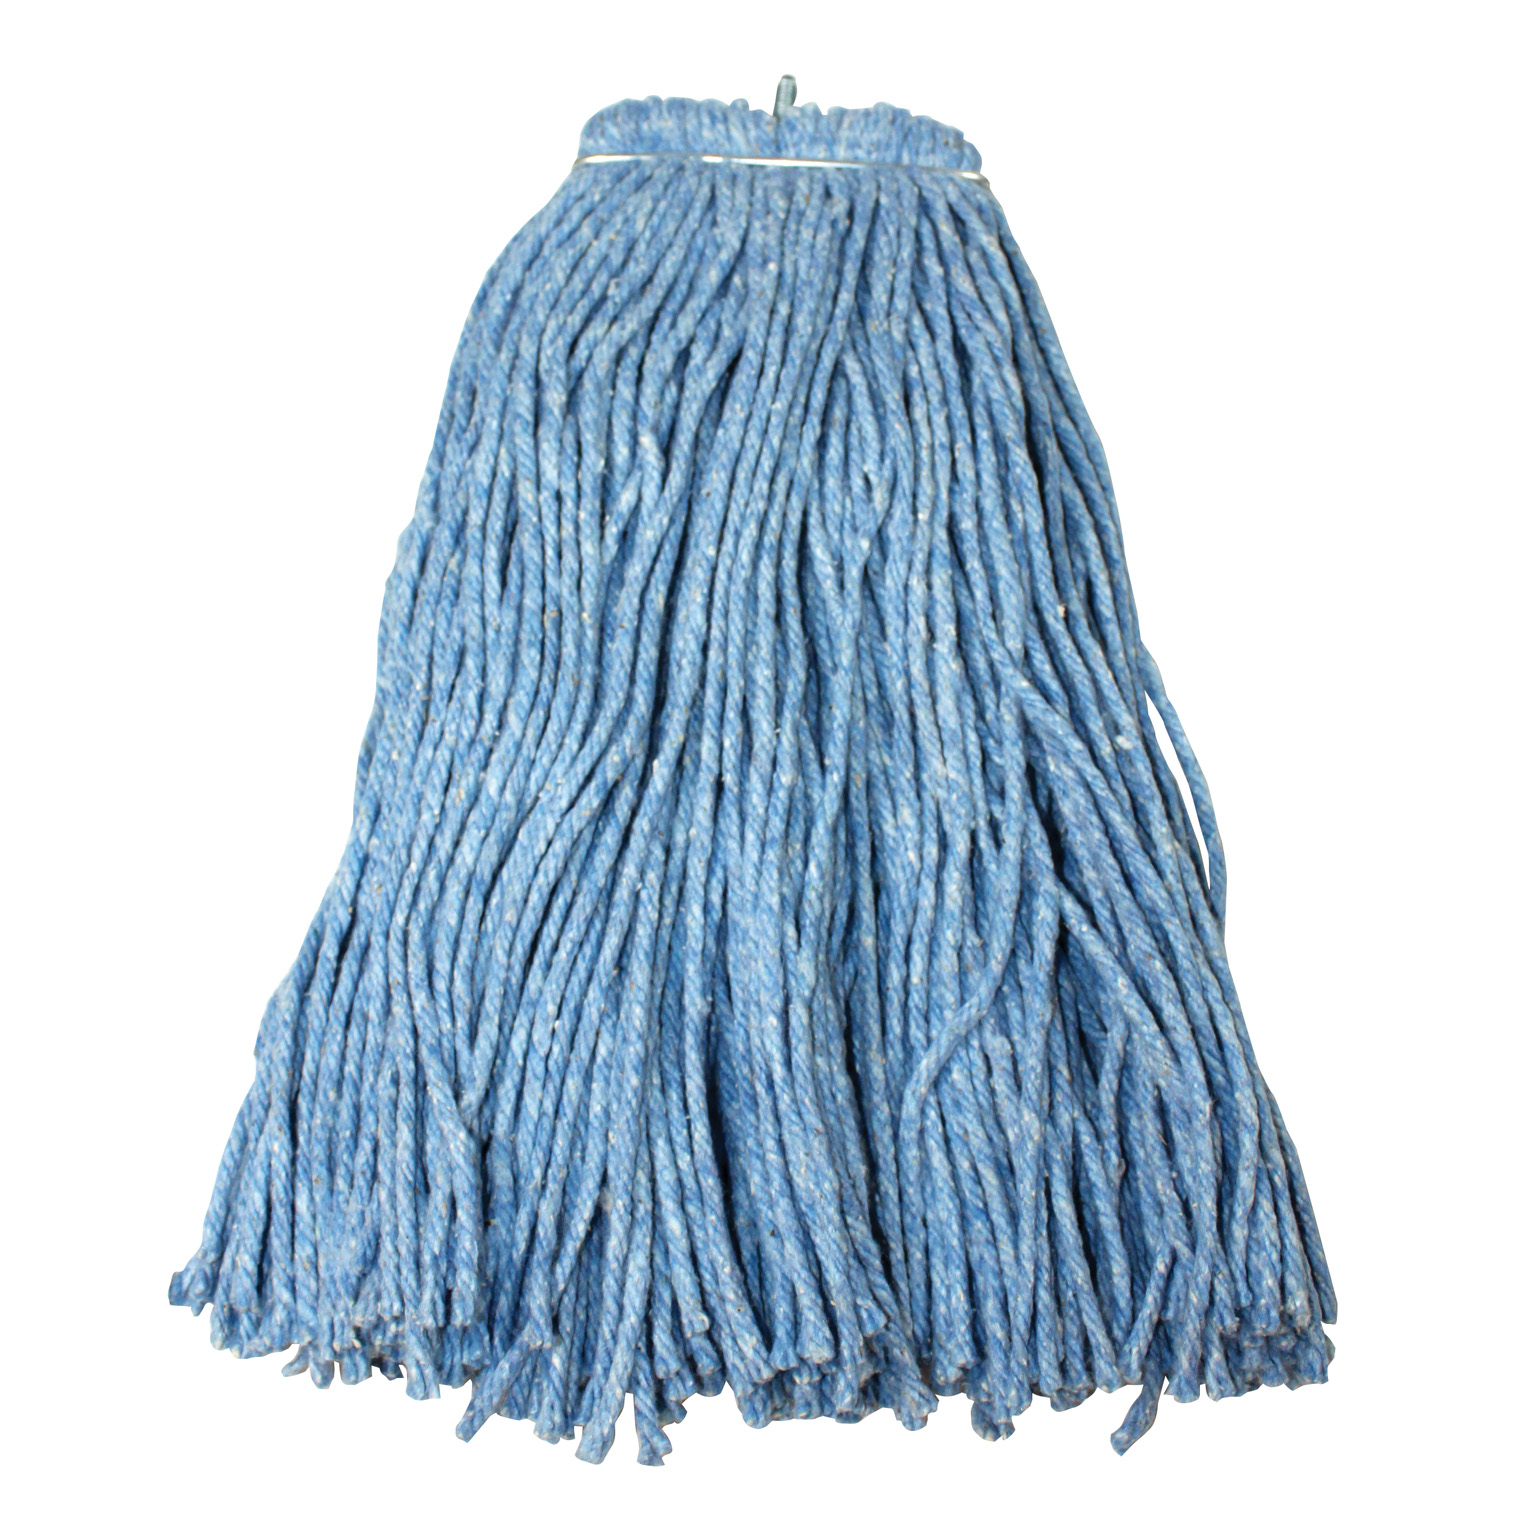 Impact Products 26524 wet mop head